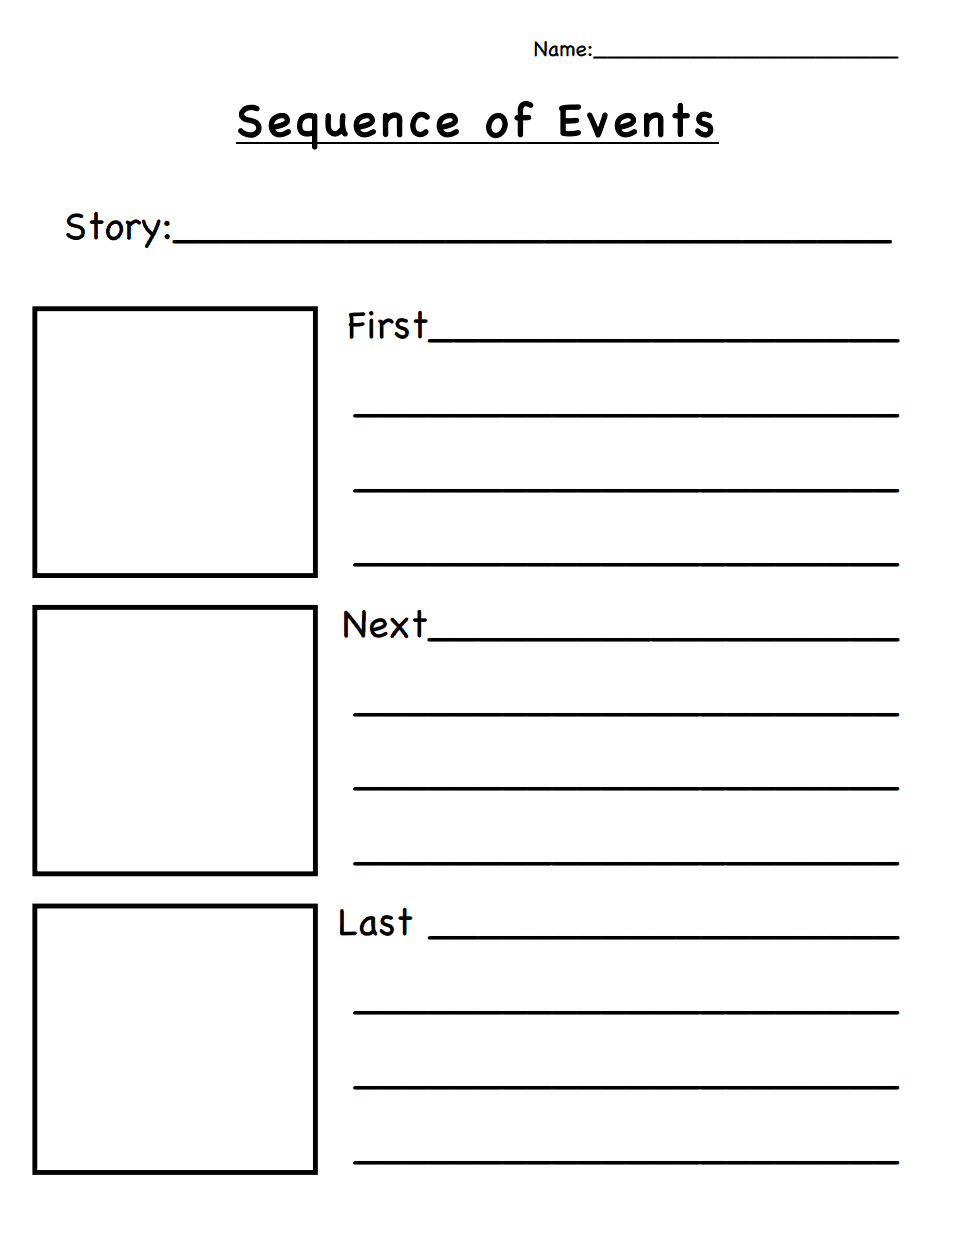 Sequence of Events.pdf | Classroom Ideas | Sequence of events, Story ...